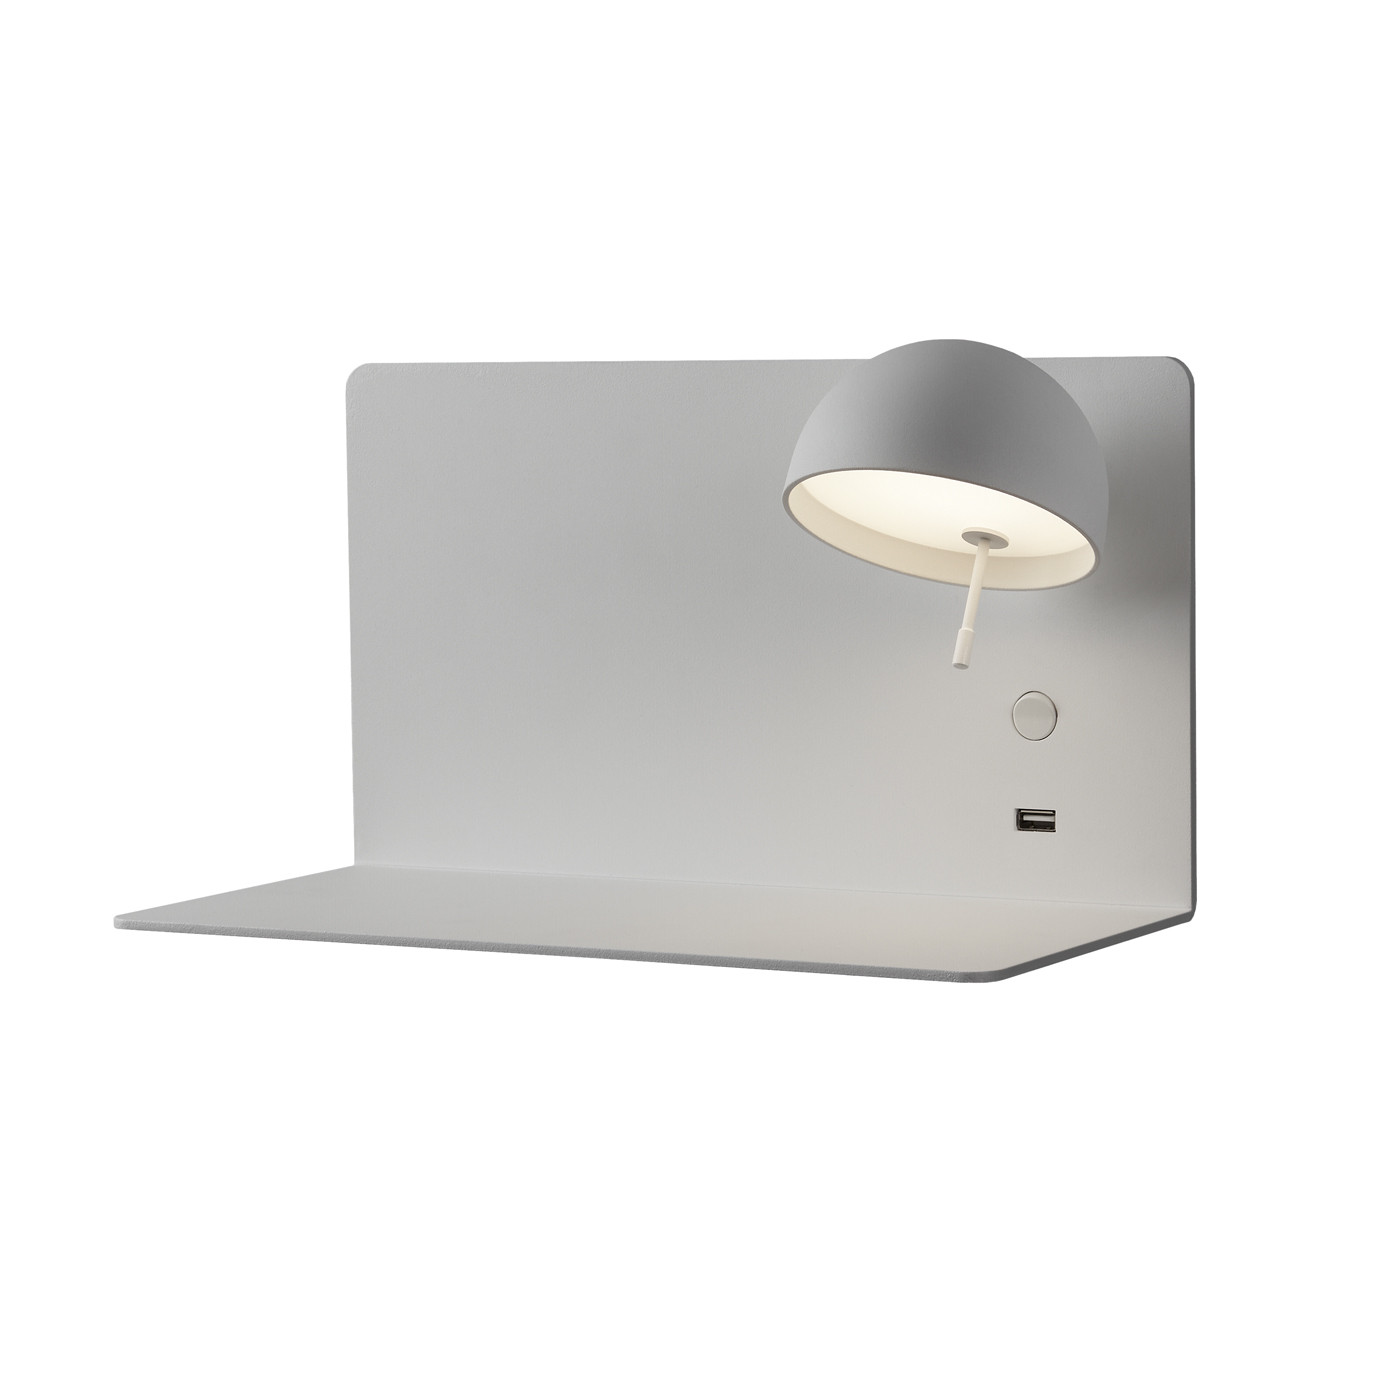 Bover Beddy A/03 LED